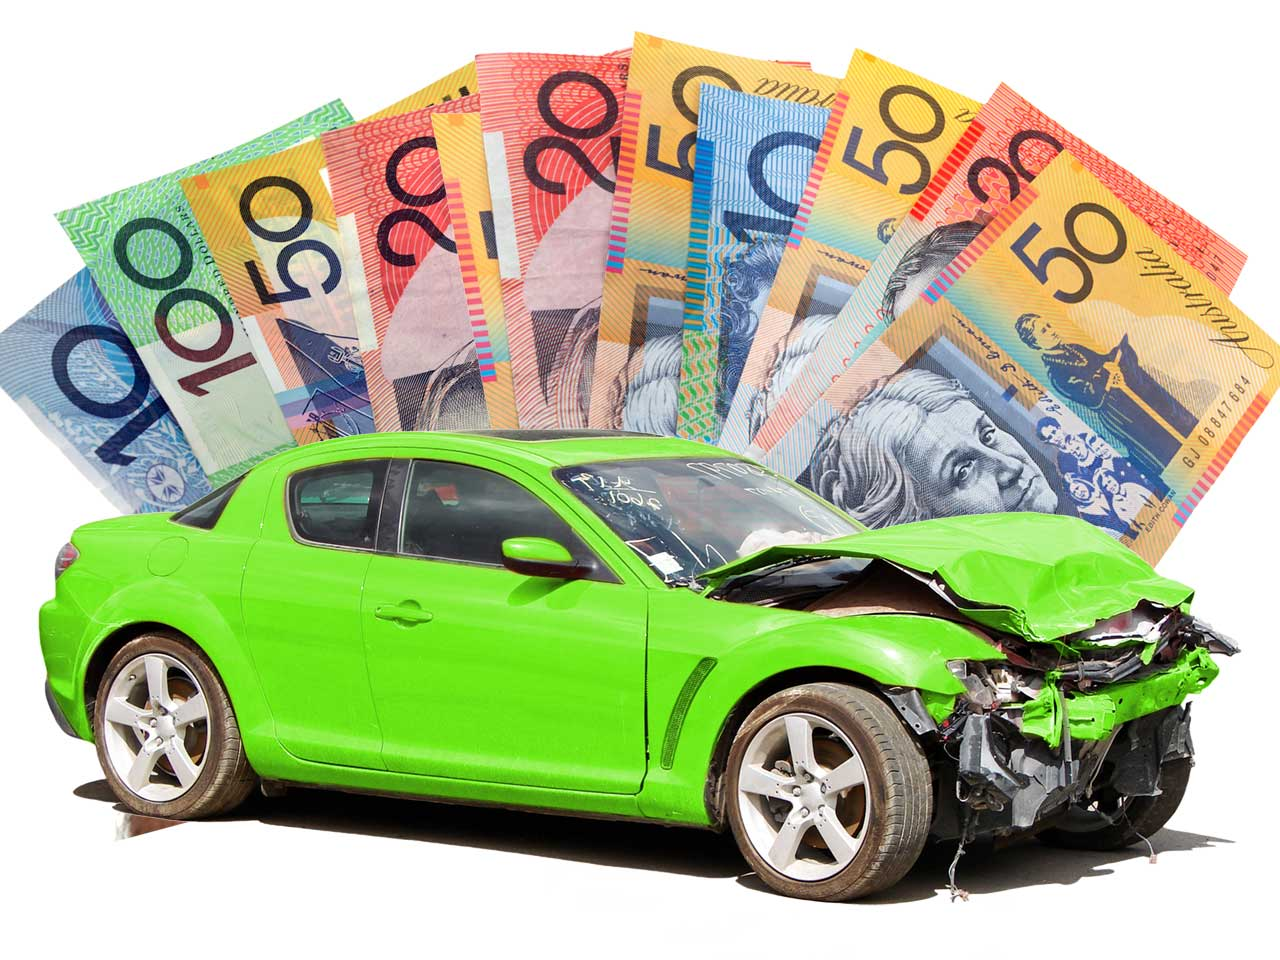 Australian dollar bills and a wrecked green car